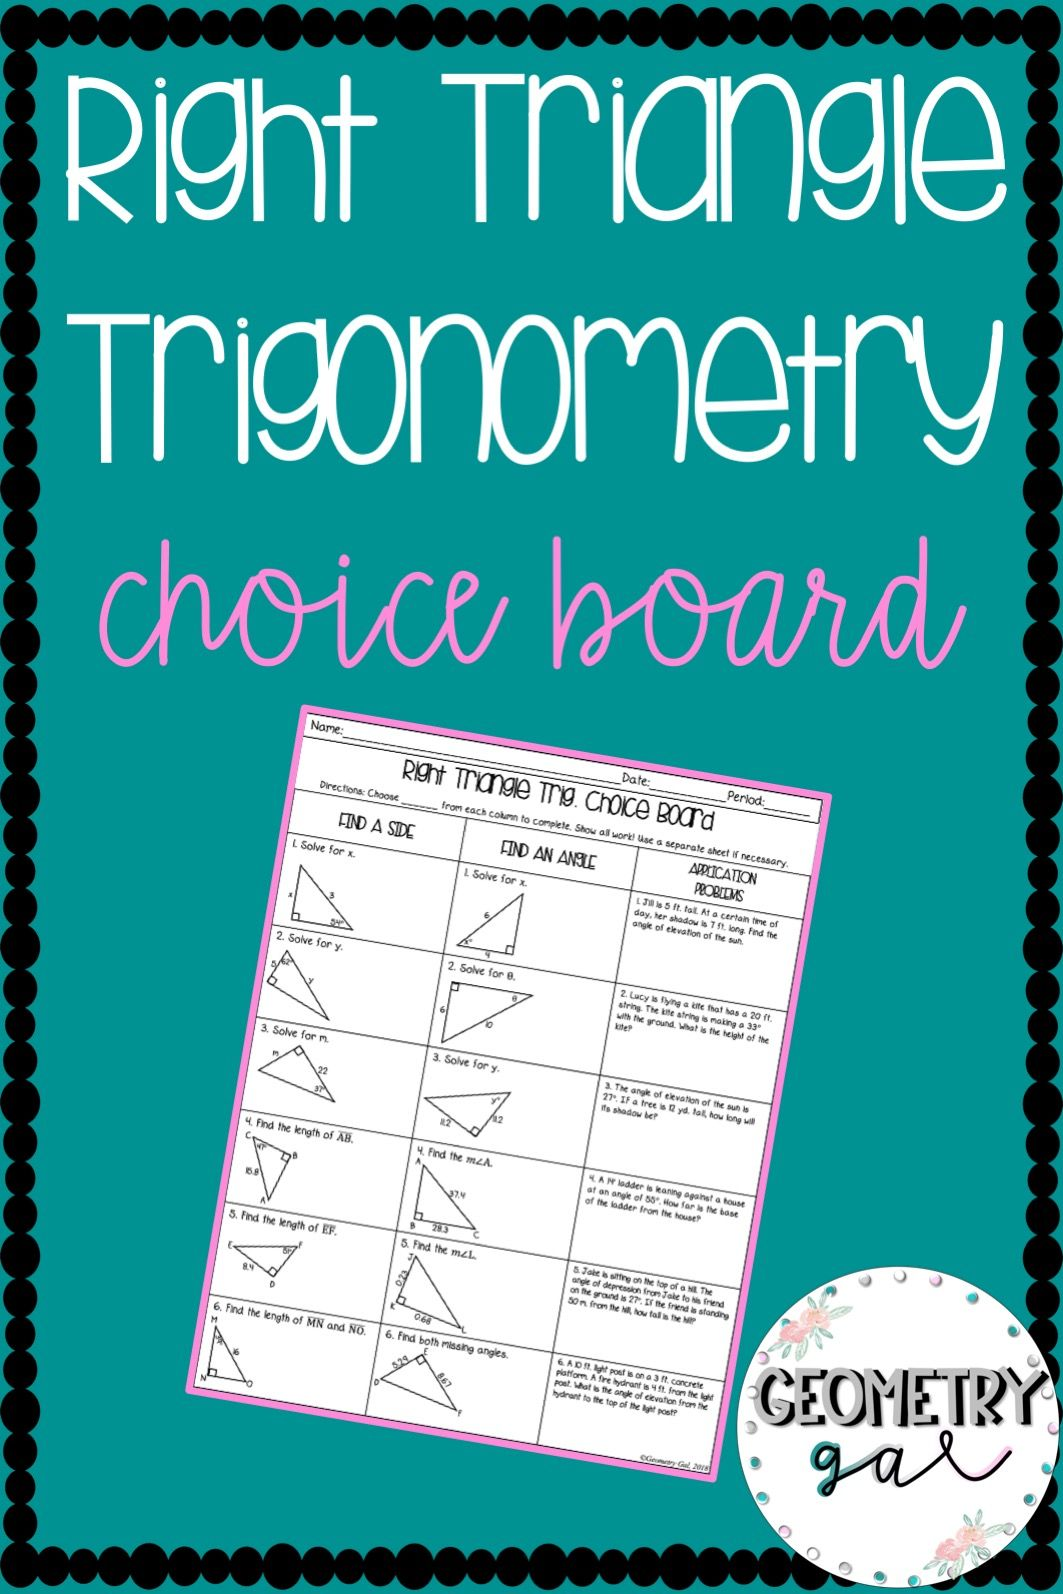 Right Triangle Trigonometry Choice Board